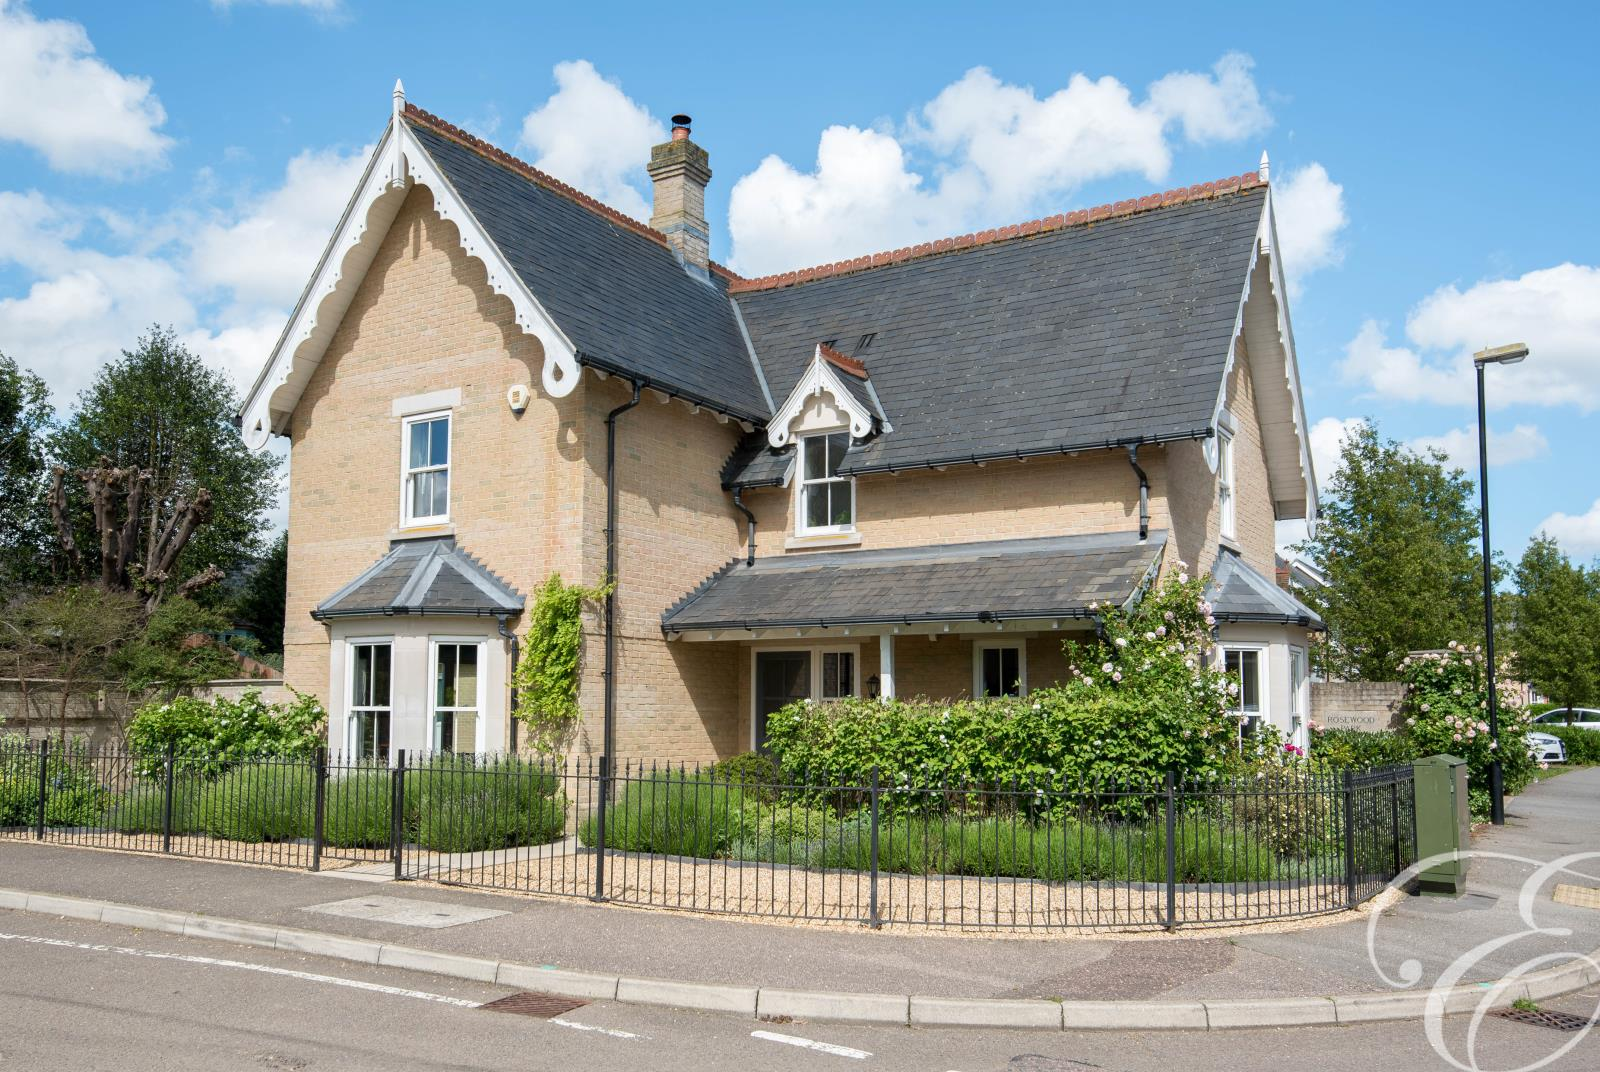 4 bed  to rent in Rosewood Park, Mistley, Manningtree, CO11